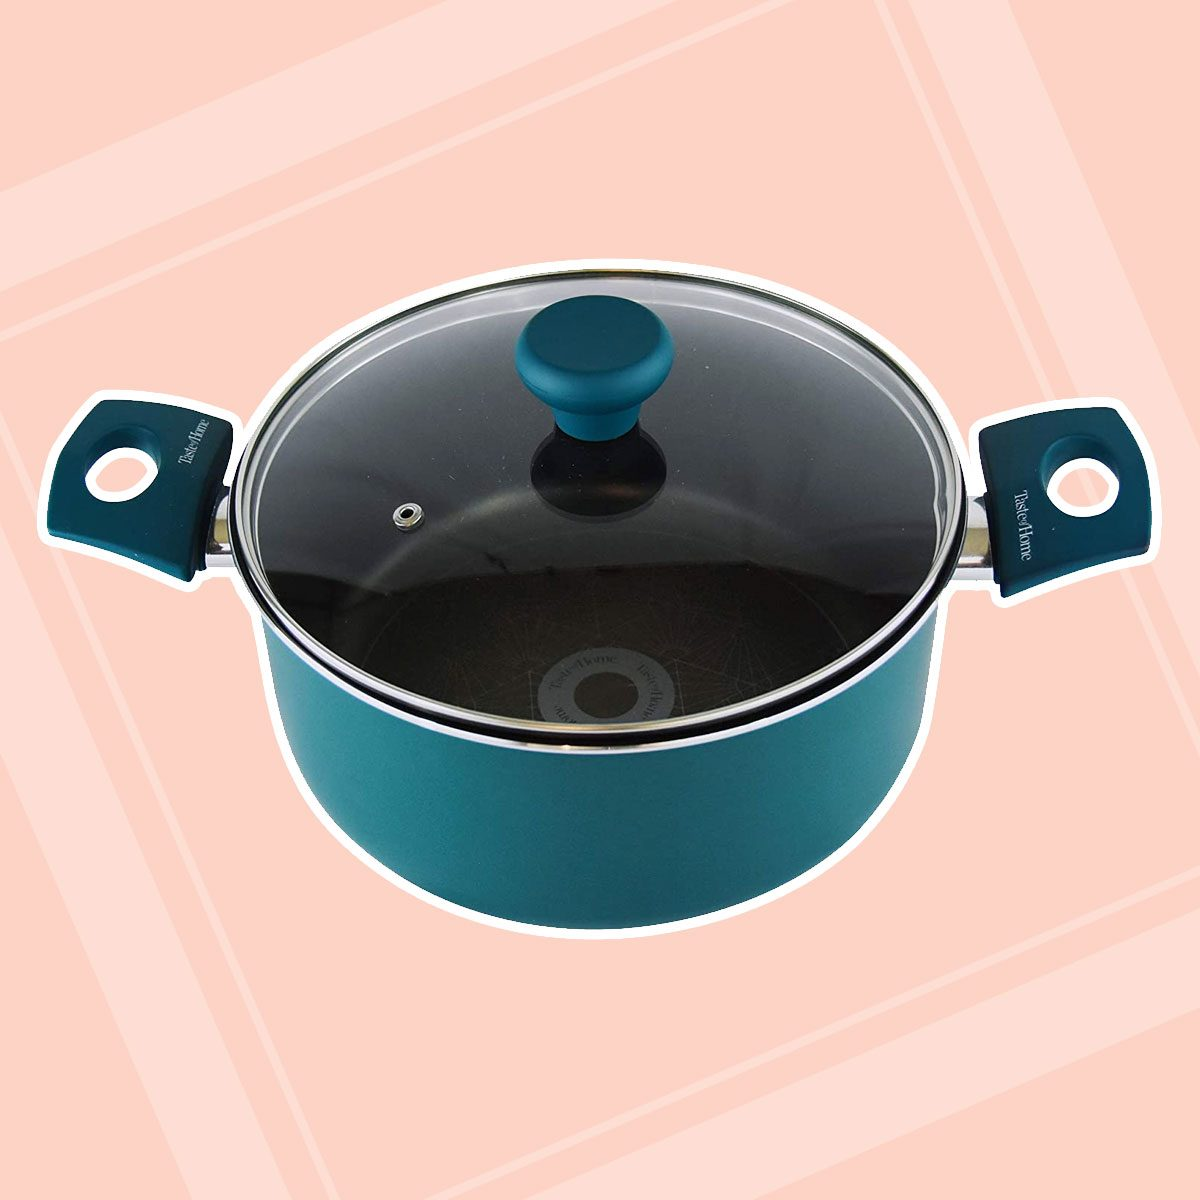 Taste of Home 5-Quart Non-Stick Aluminum Dutch Oven with Lid